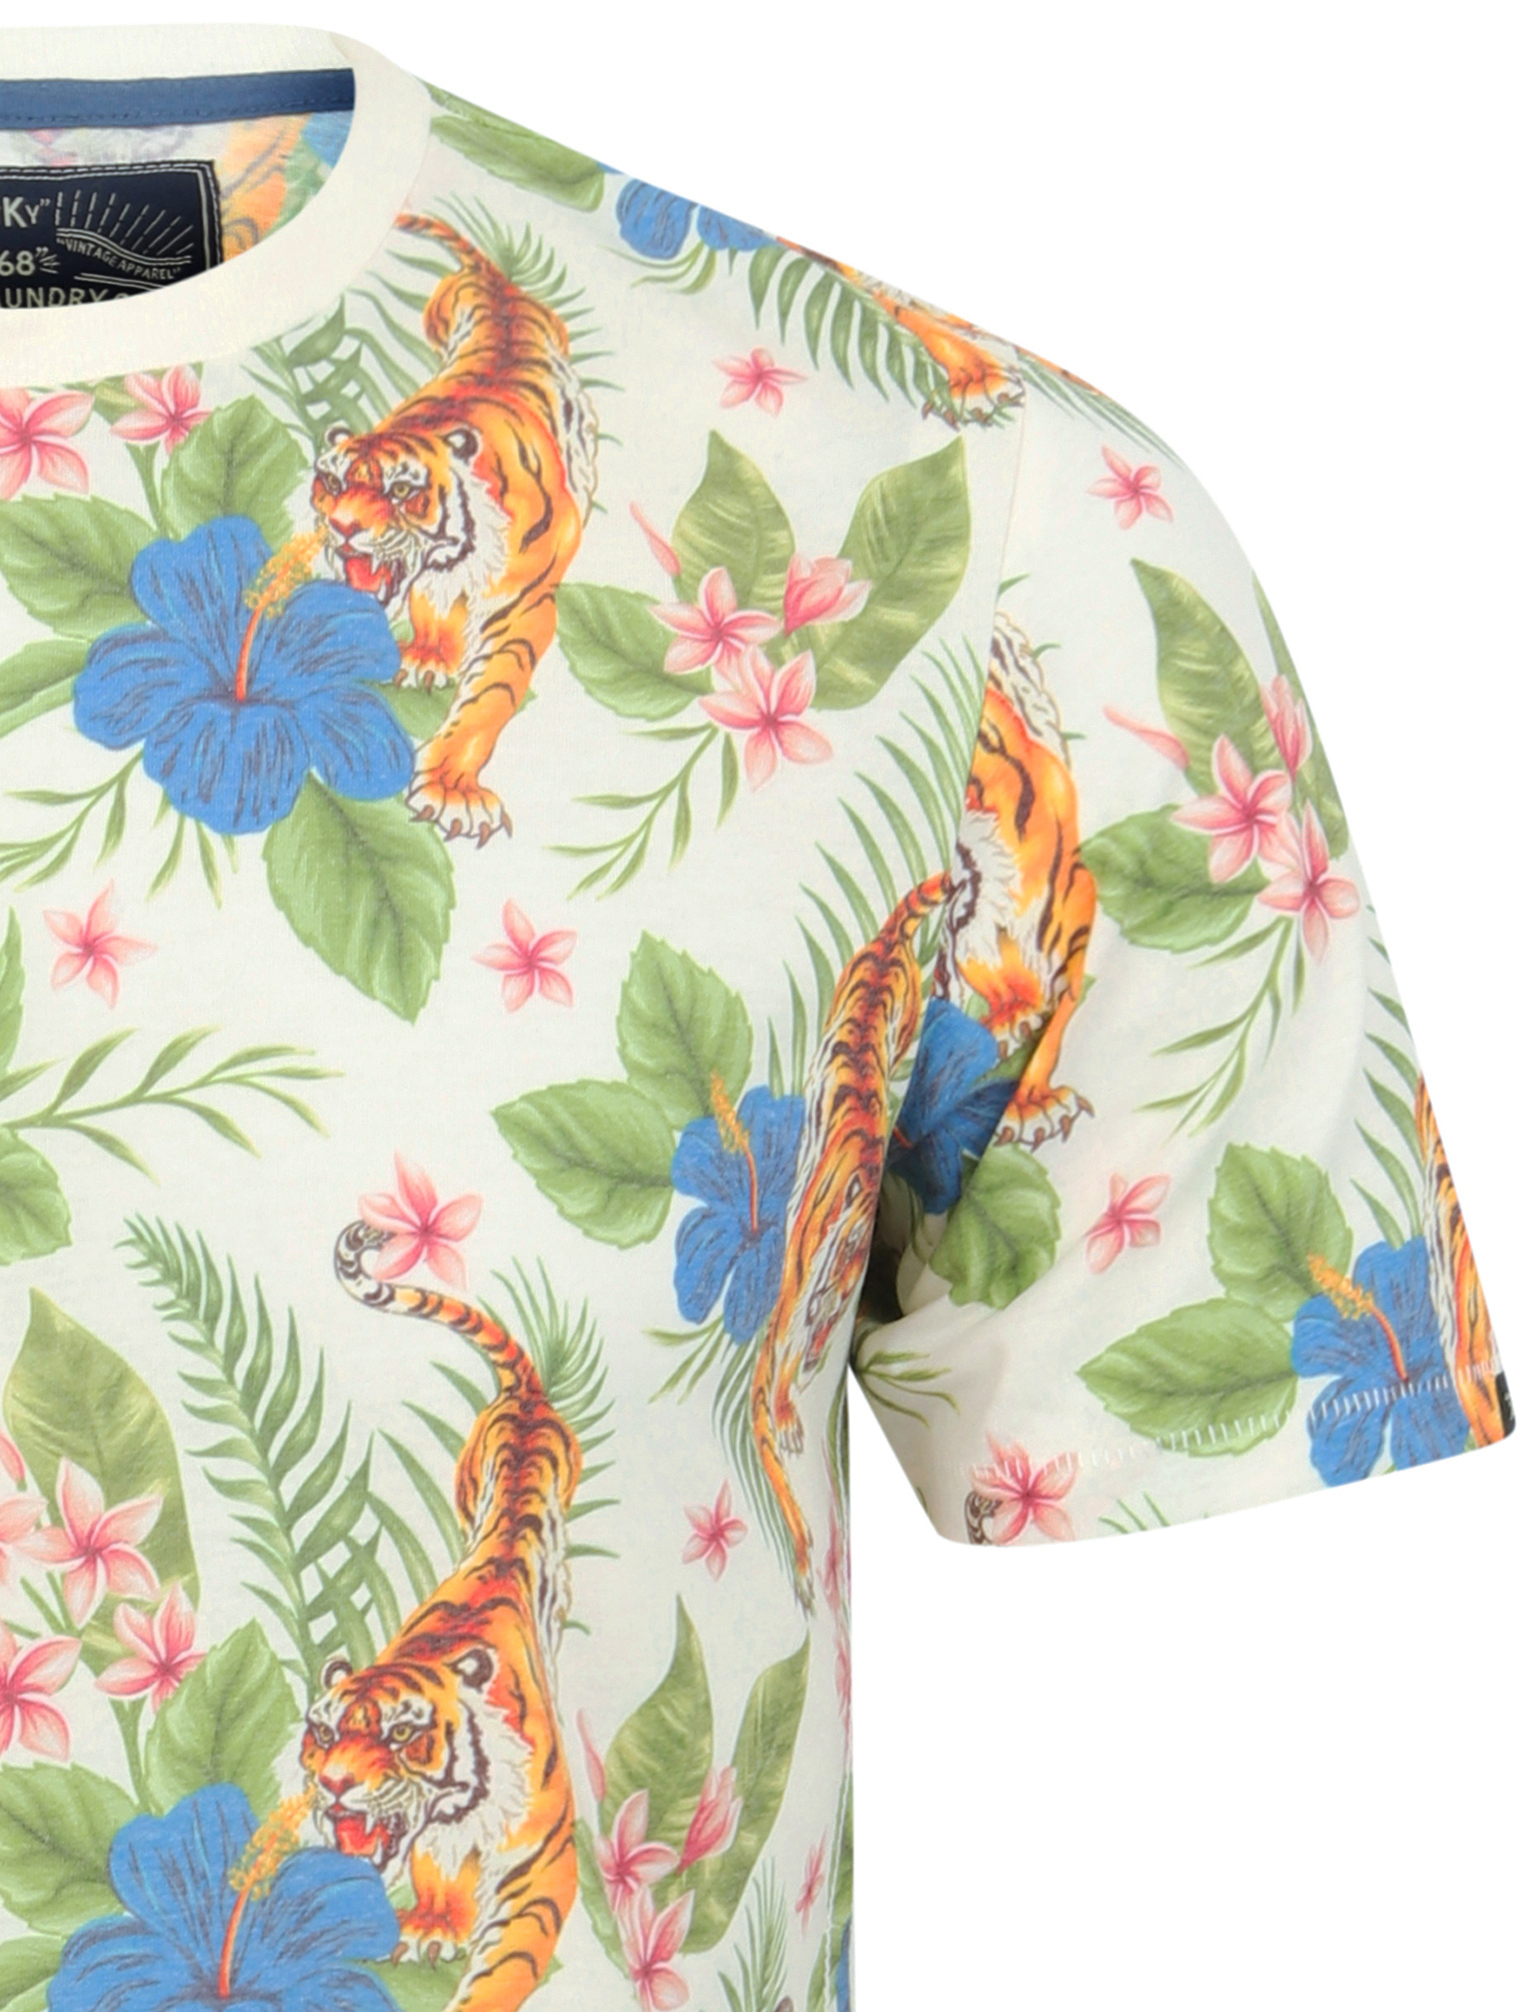 Tokyo-Laundry-Tropical-Print-Crew-Neck-T-Shirt-Hawaiian-Floral-Summer-Holiday thumbnail 27